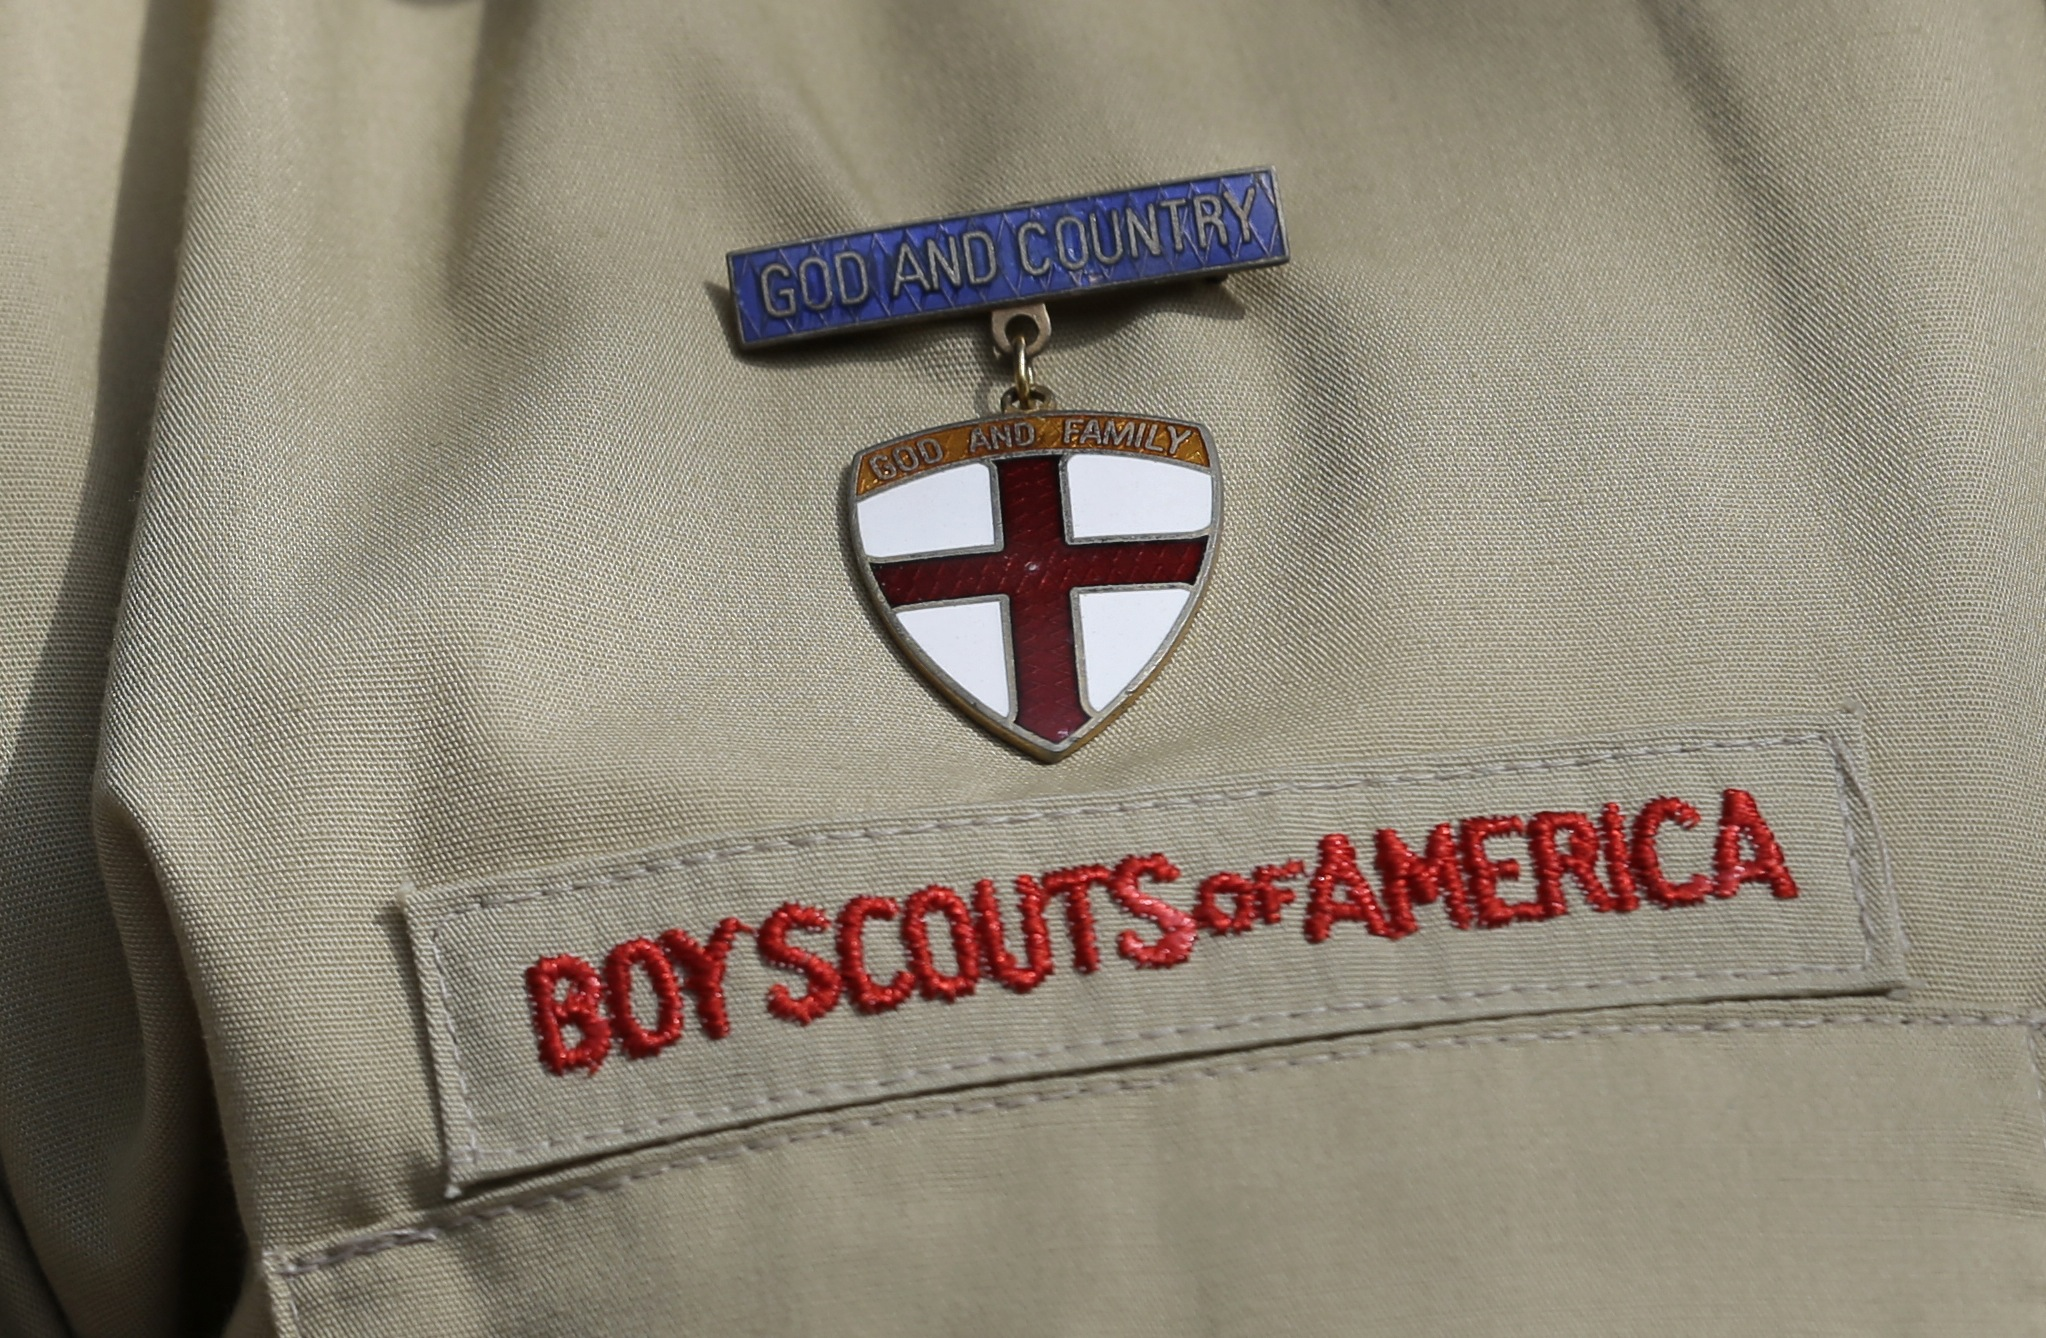 Could alleged Boy Scout victims in Pa. get justice years later?